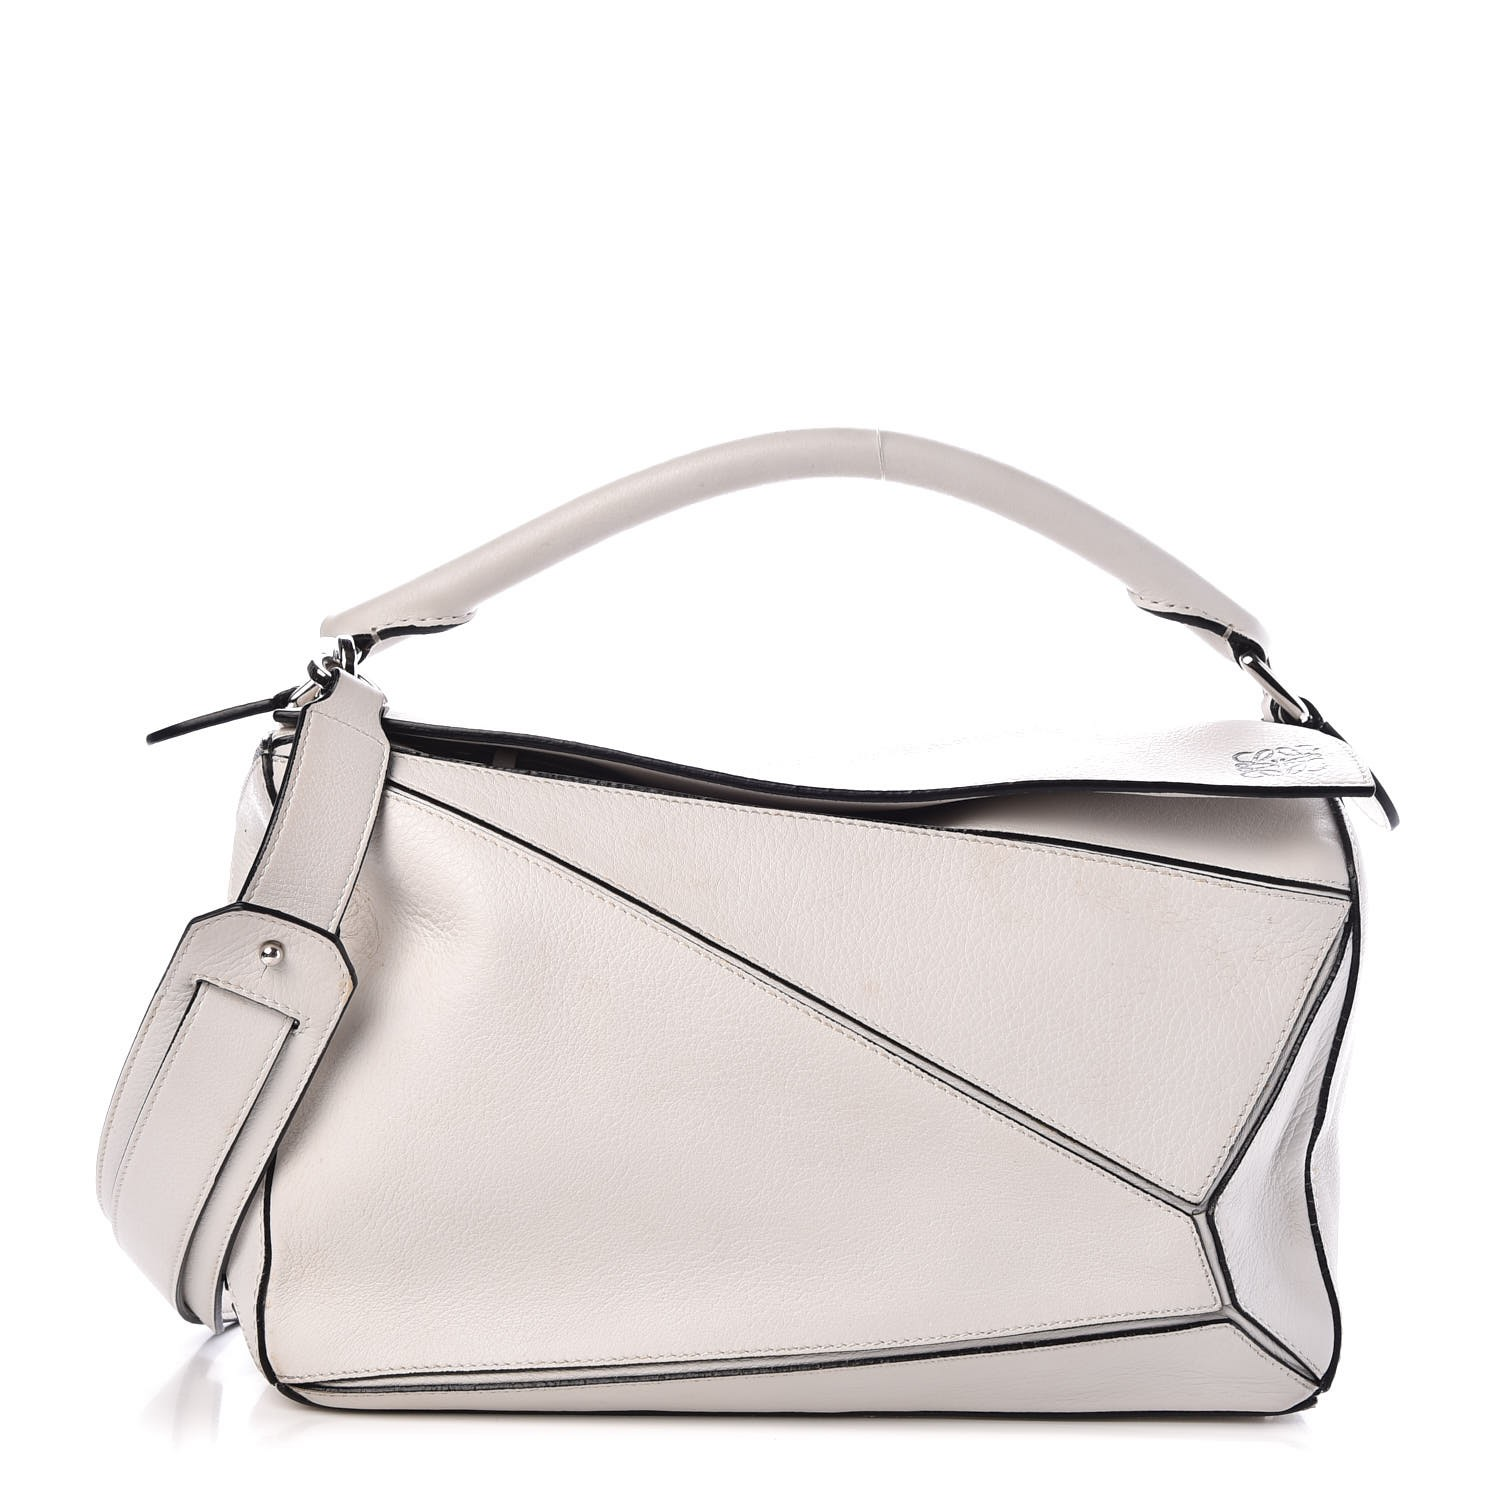 Loewe White Calfskin Leather Puzzle Bag